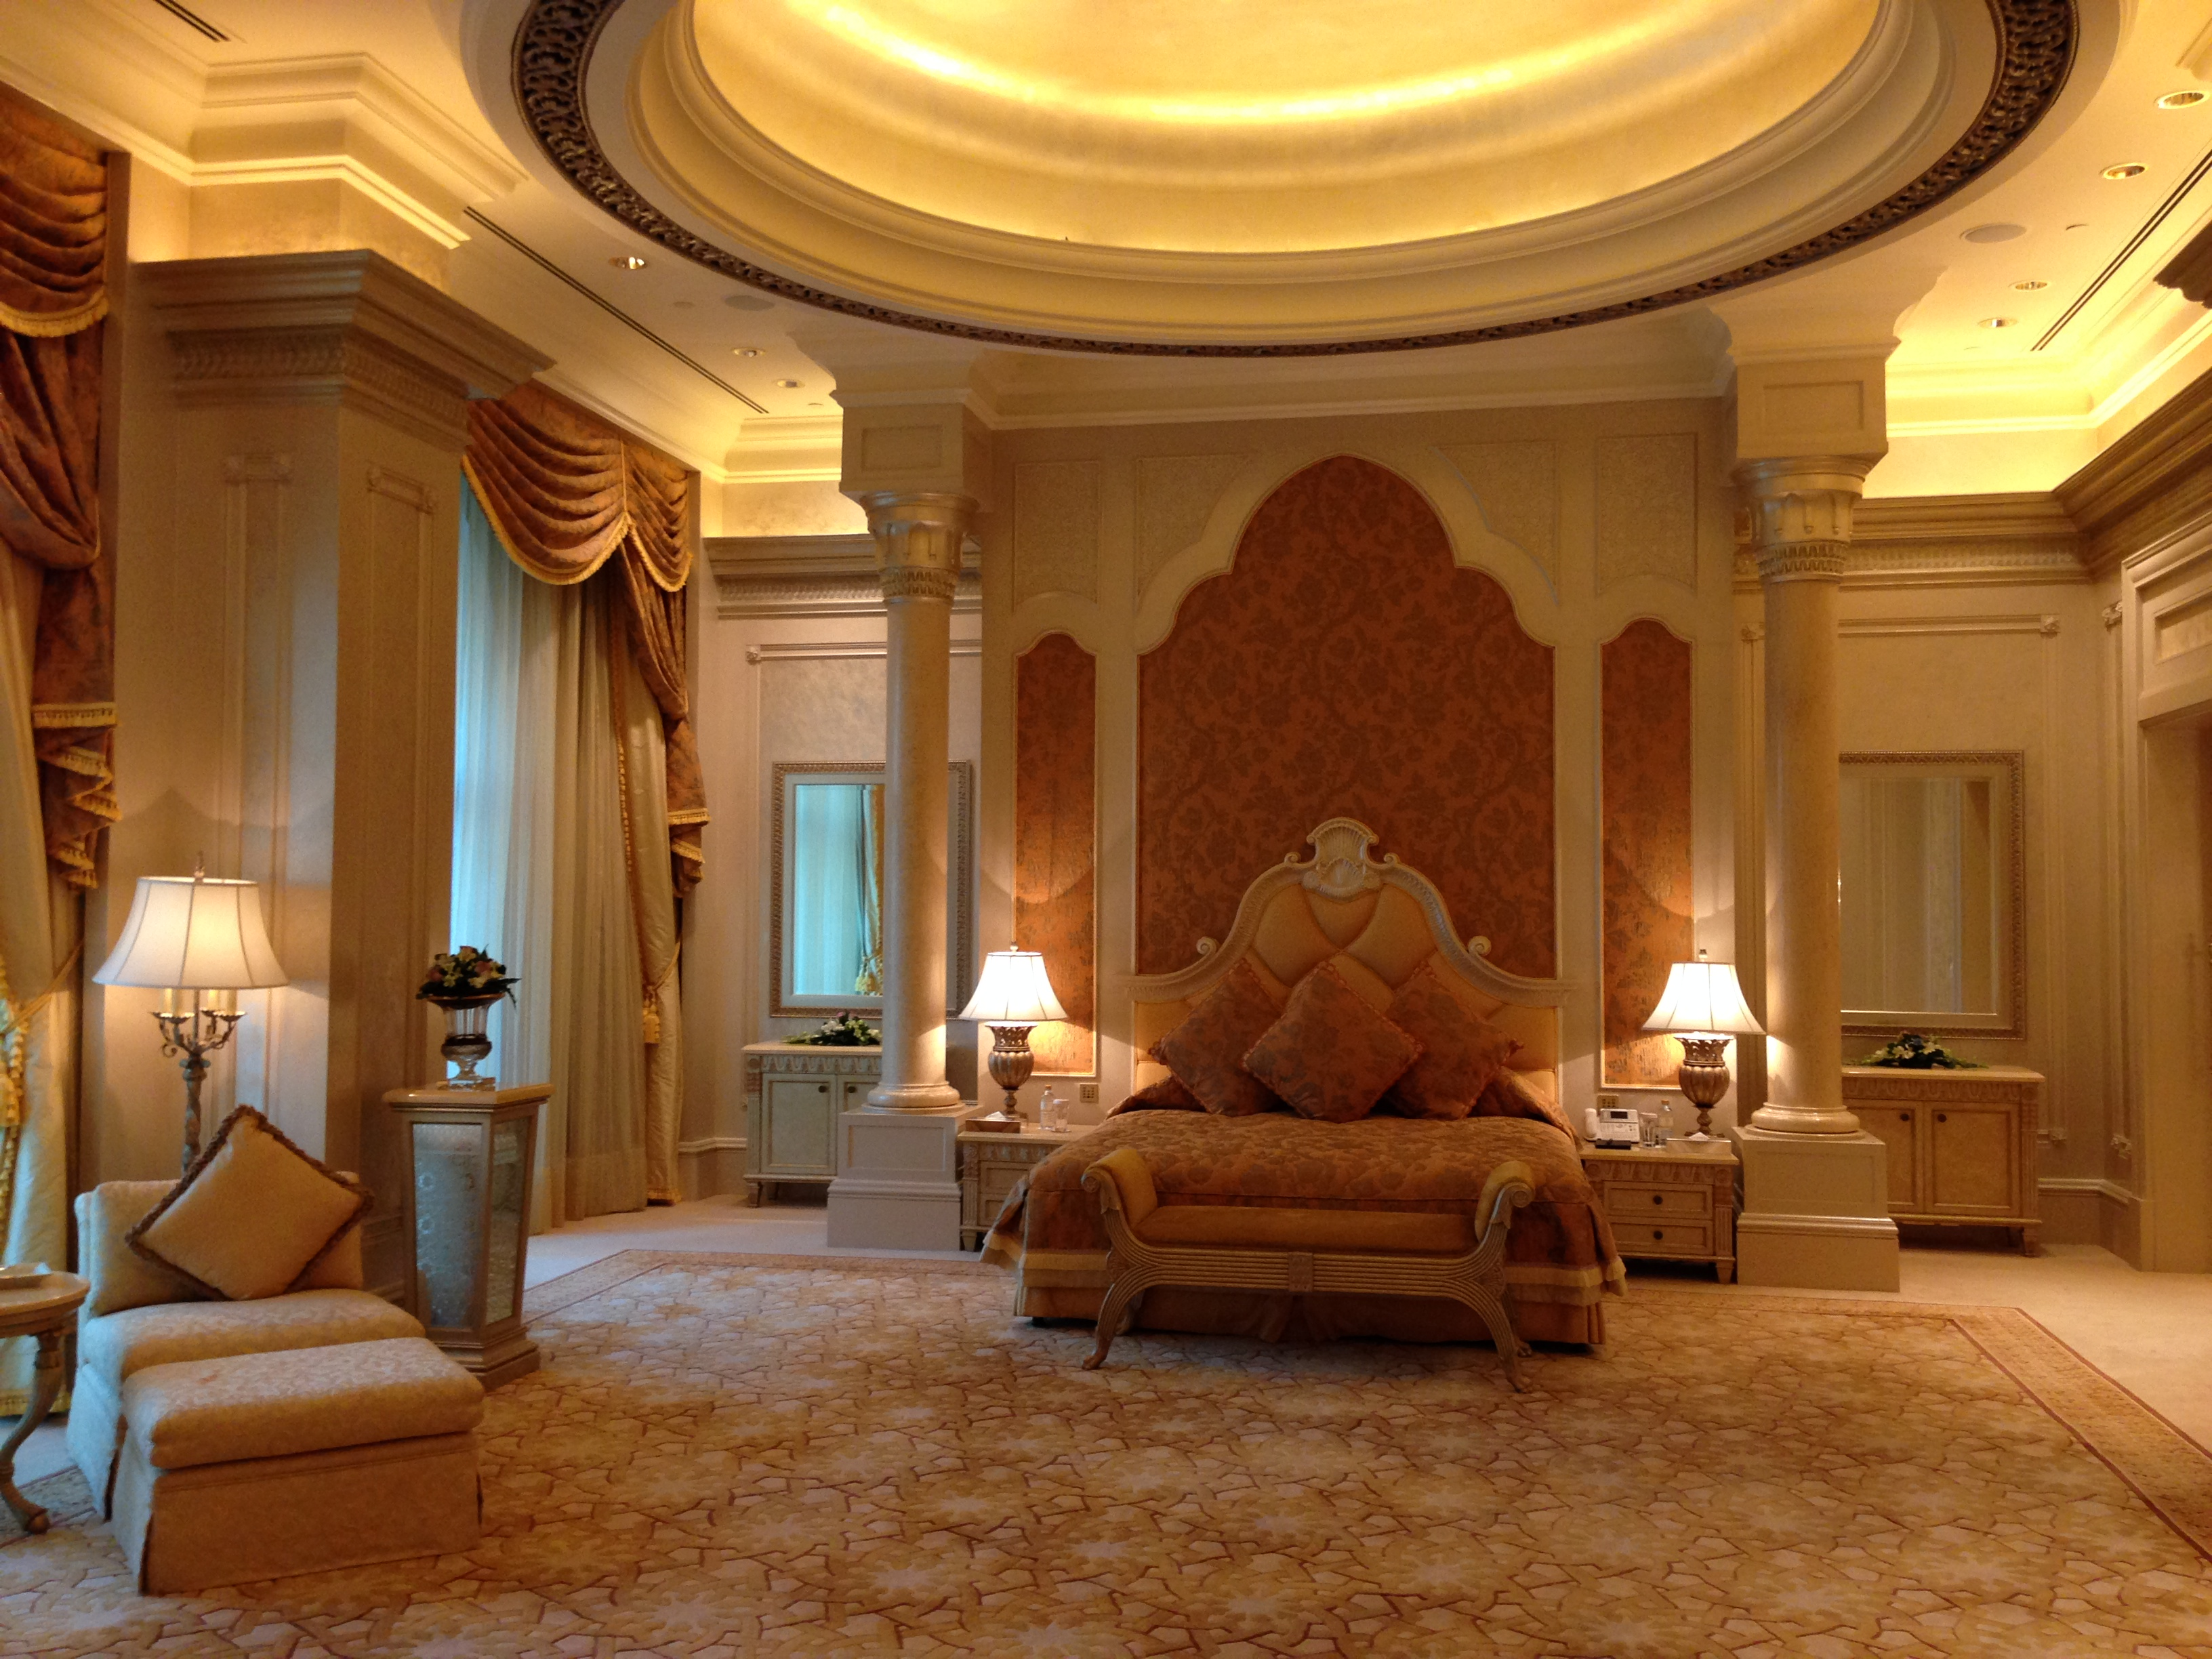 Emirates Palace A Luxury Hotel That Makes Your Dreams Come True